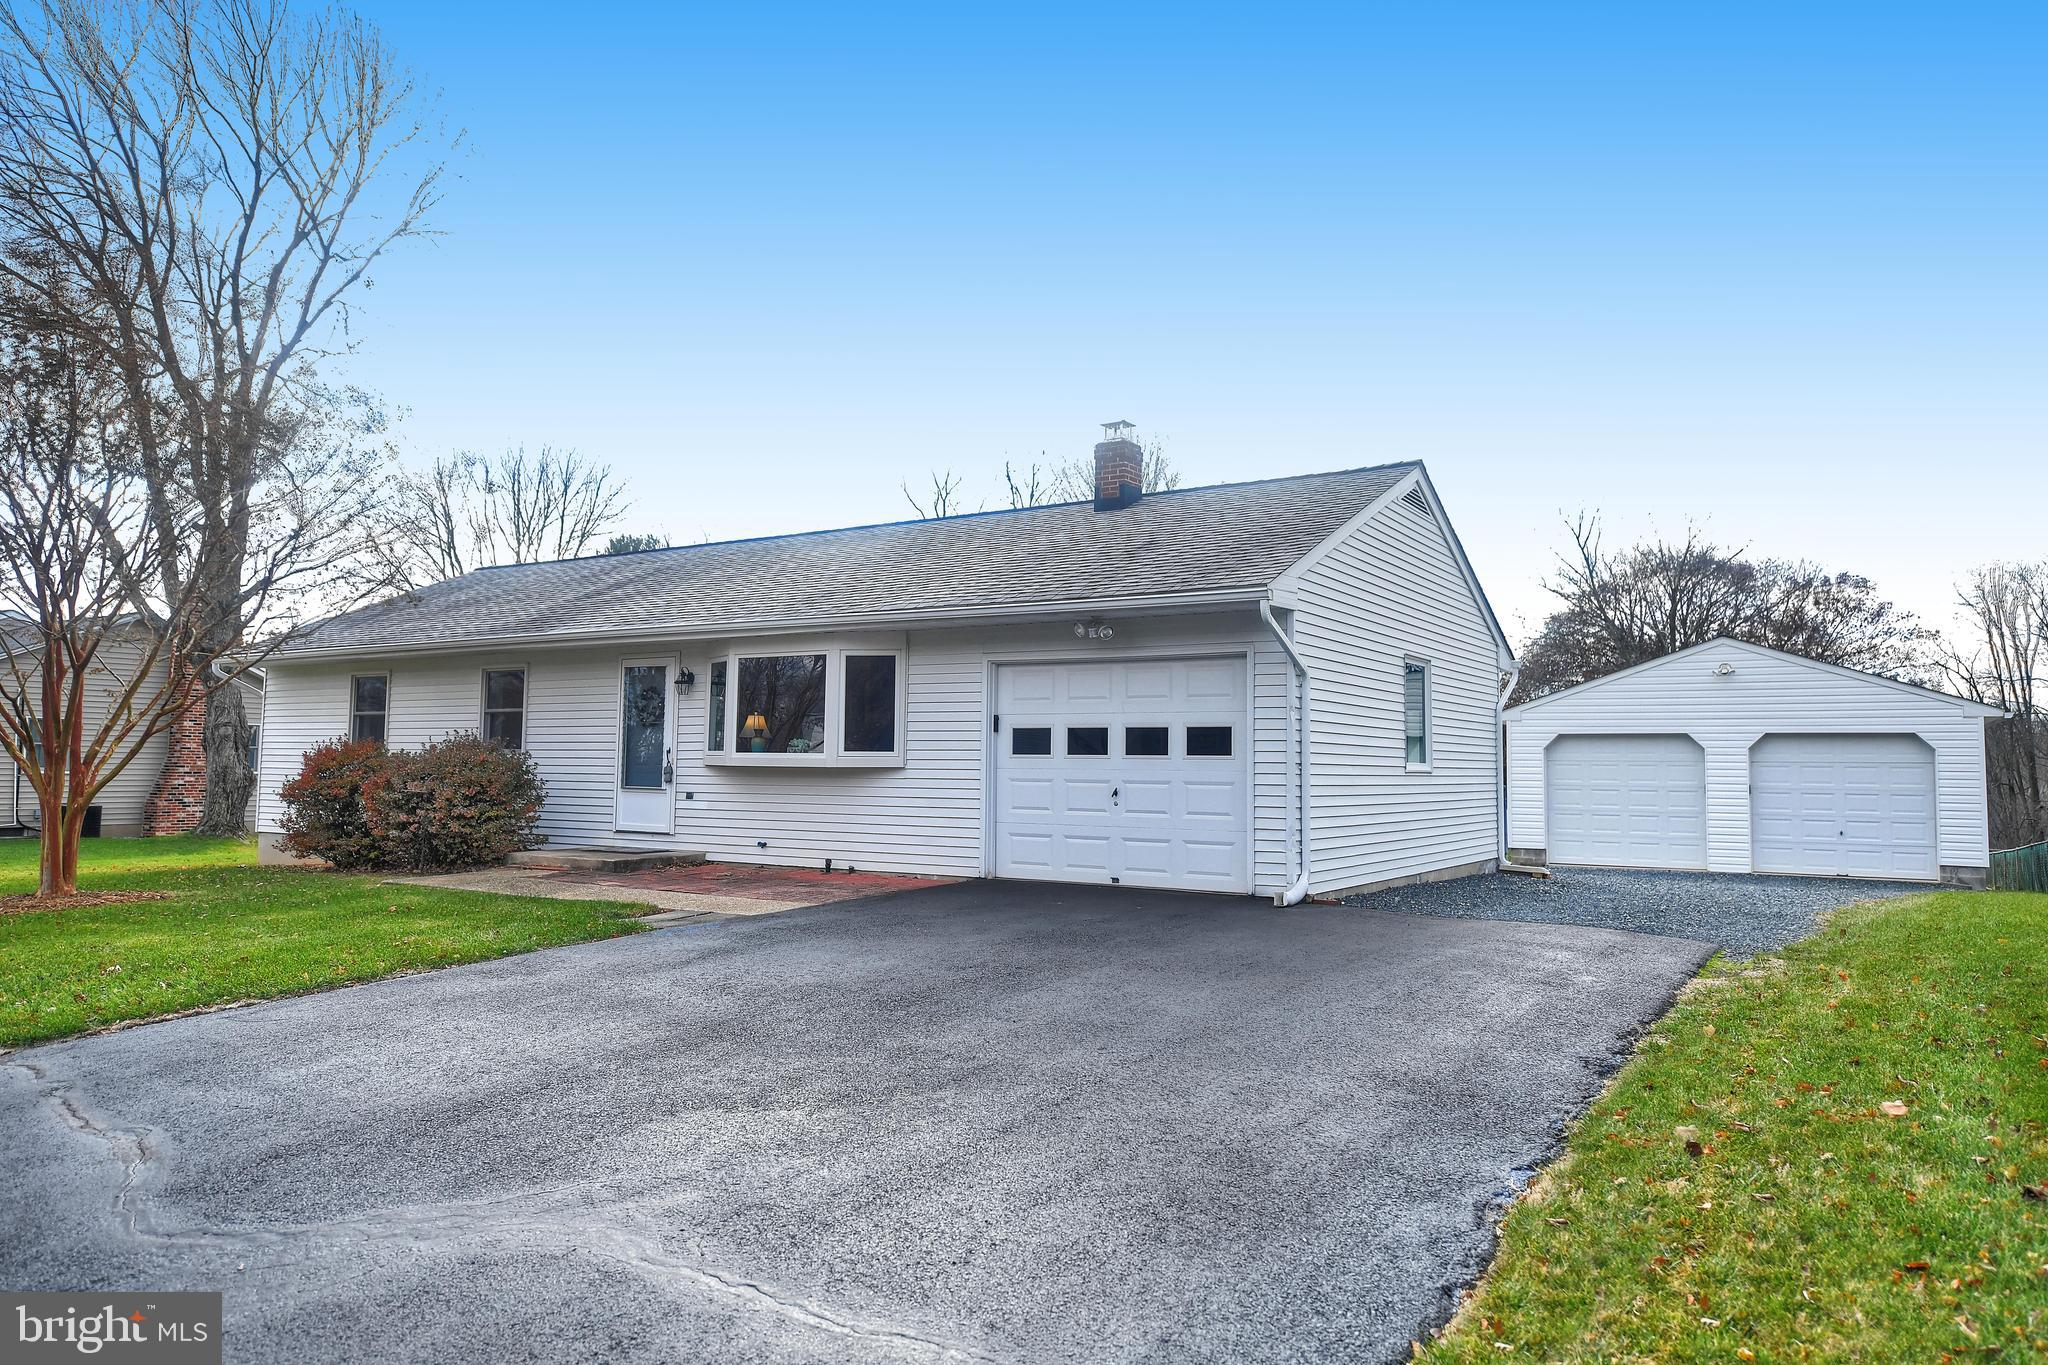 Welcome Home! You will feel right at home when you enter this well maintained three bedroom rancher